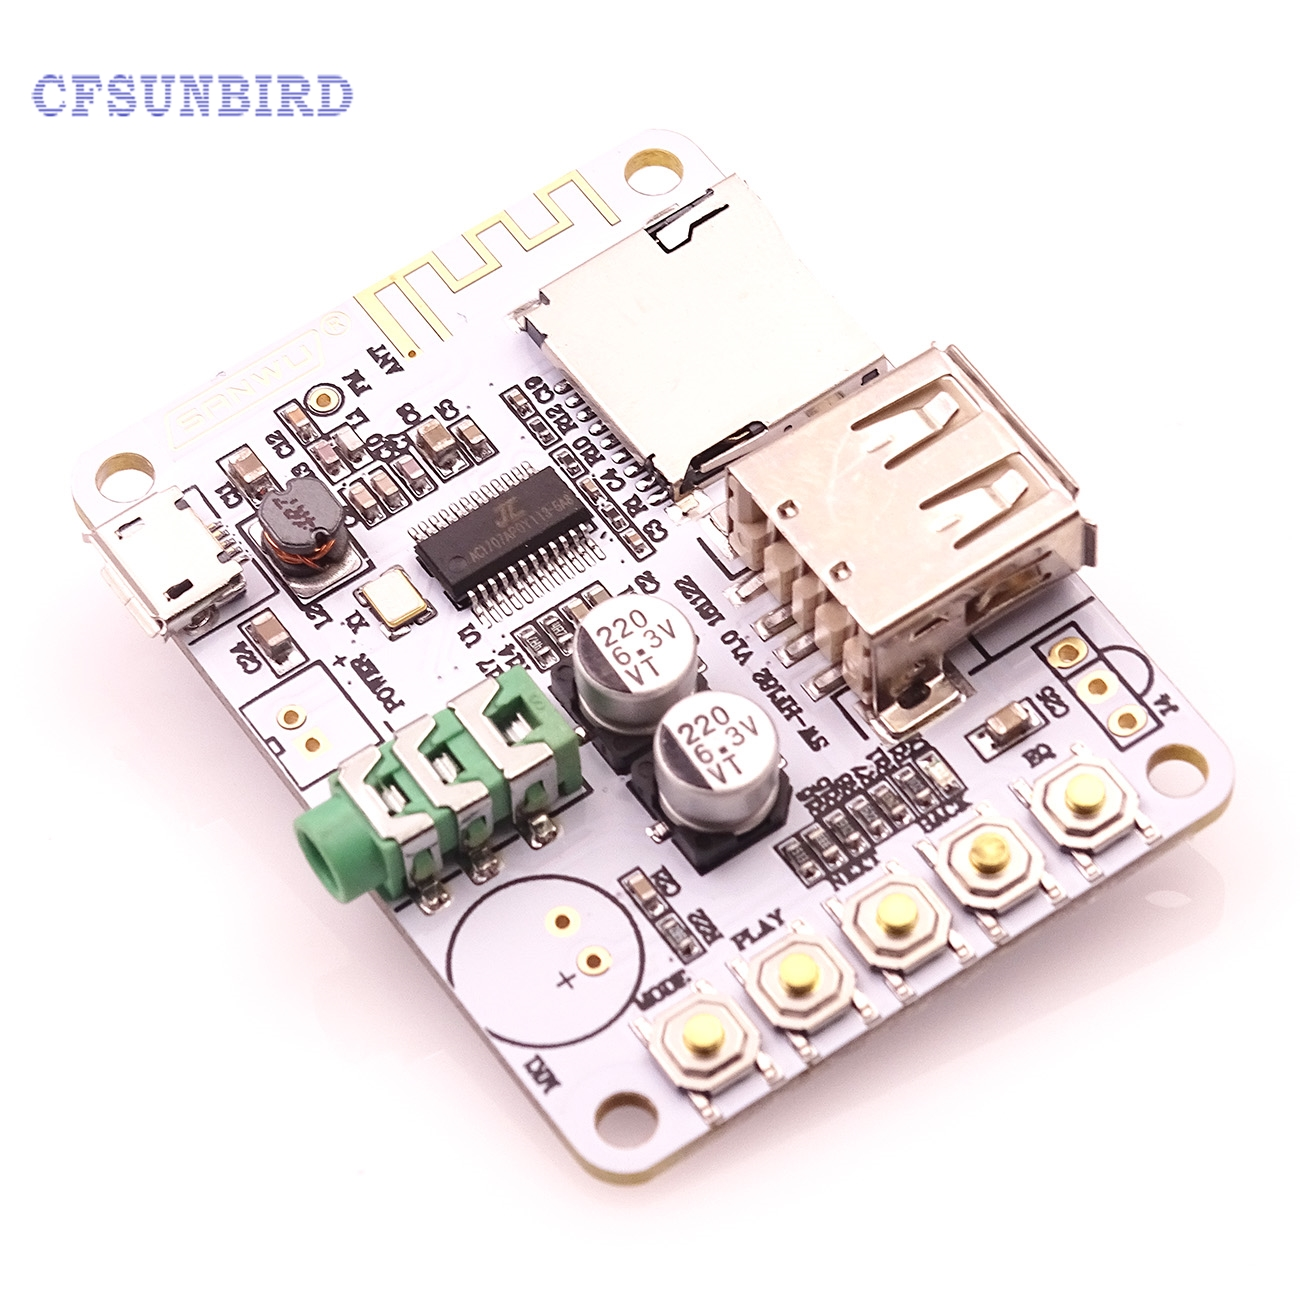 Bluetooth Audio Receiver Bluetooth MP3 Decoding USB TF Card Board Decoding Broadcast Output Level Before Play dc 5v bluetooth audio receiver module usb tf sd card decoding board preamp output support fat32 system